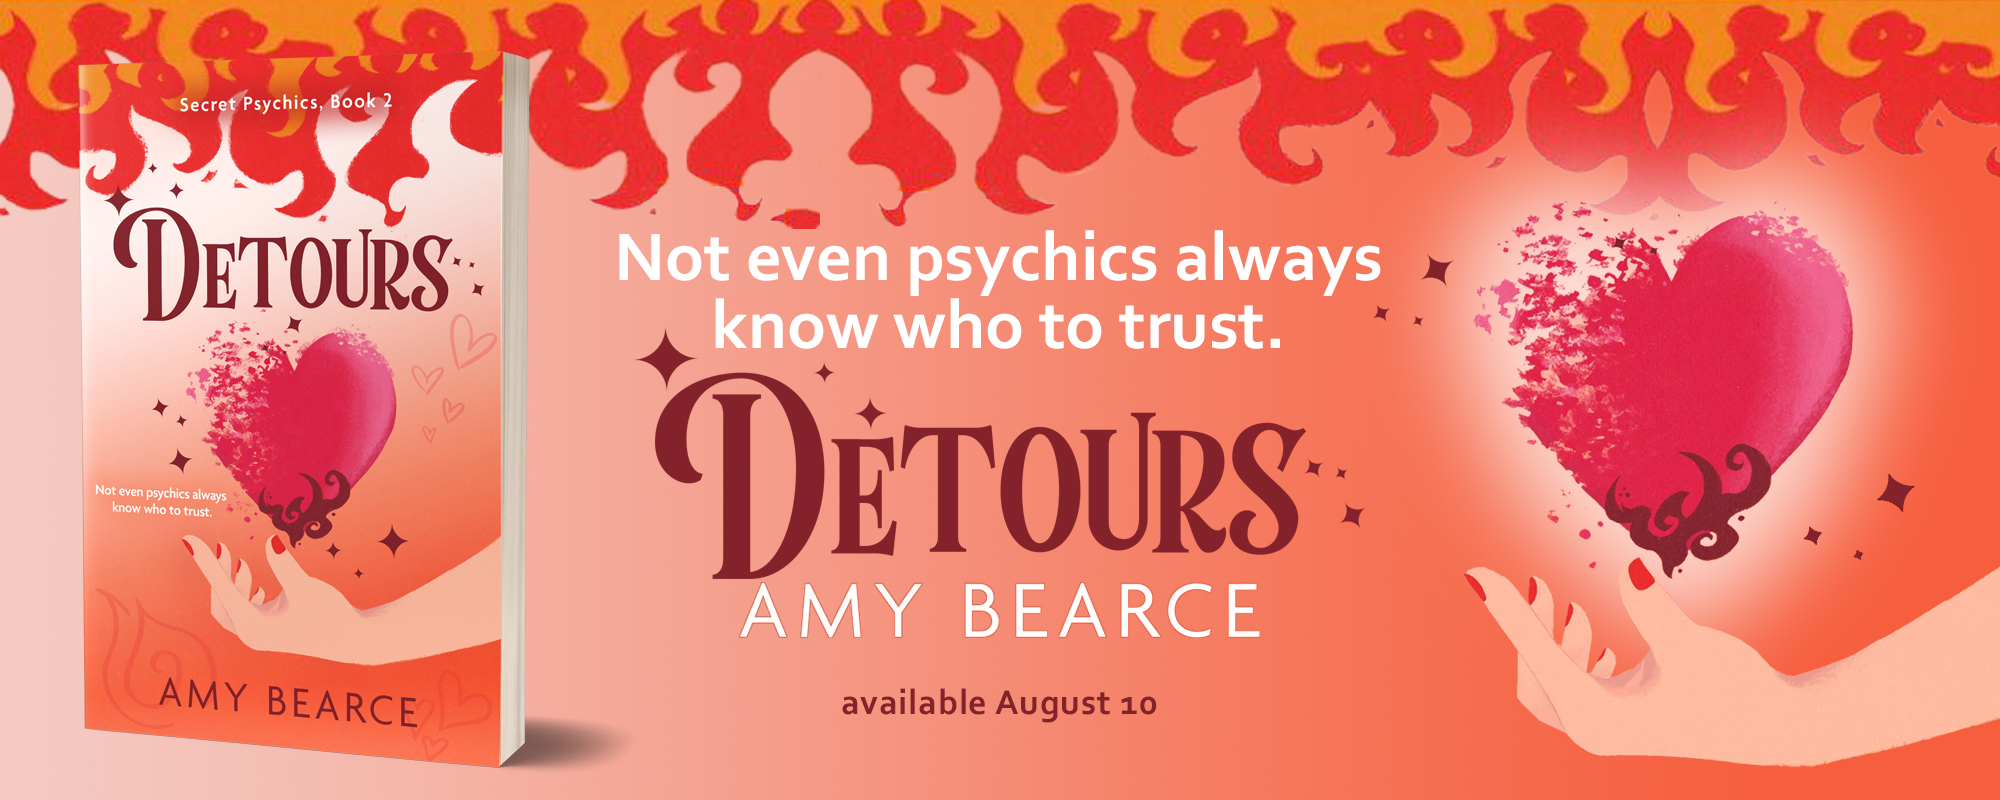 Detours by Amy Bearce, coming soon